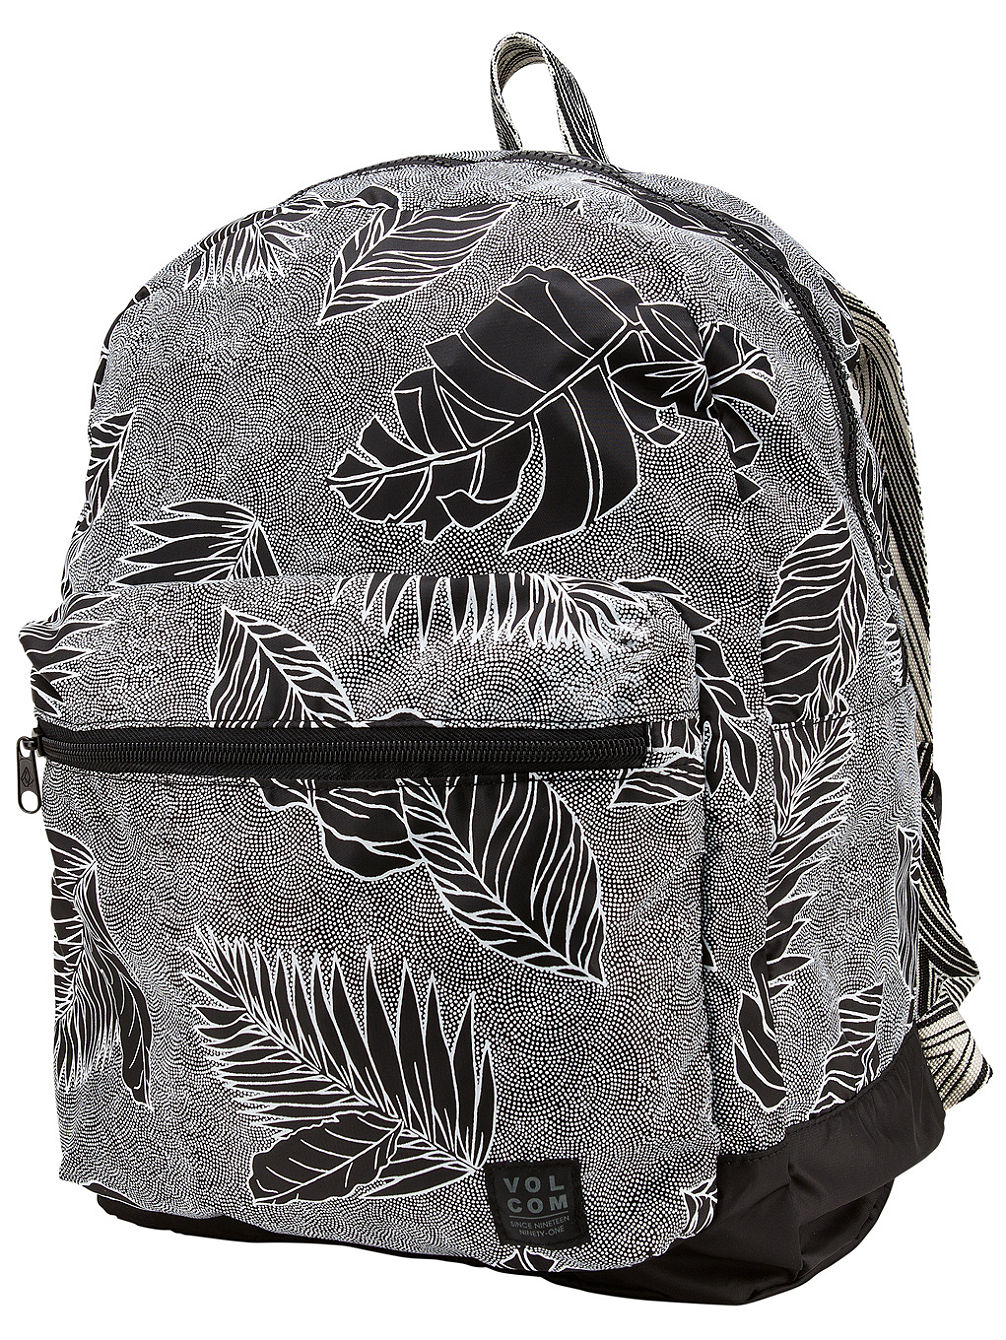 volcom-leaf-me-alone-backpack